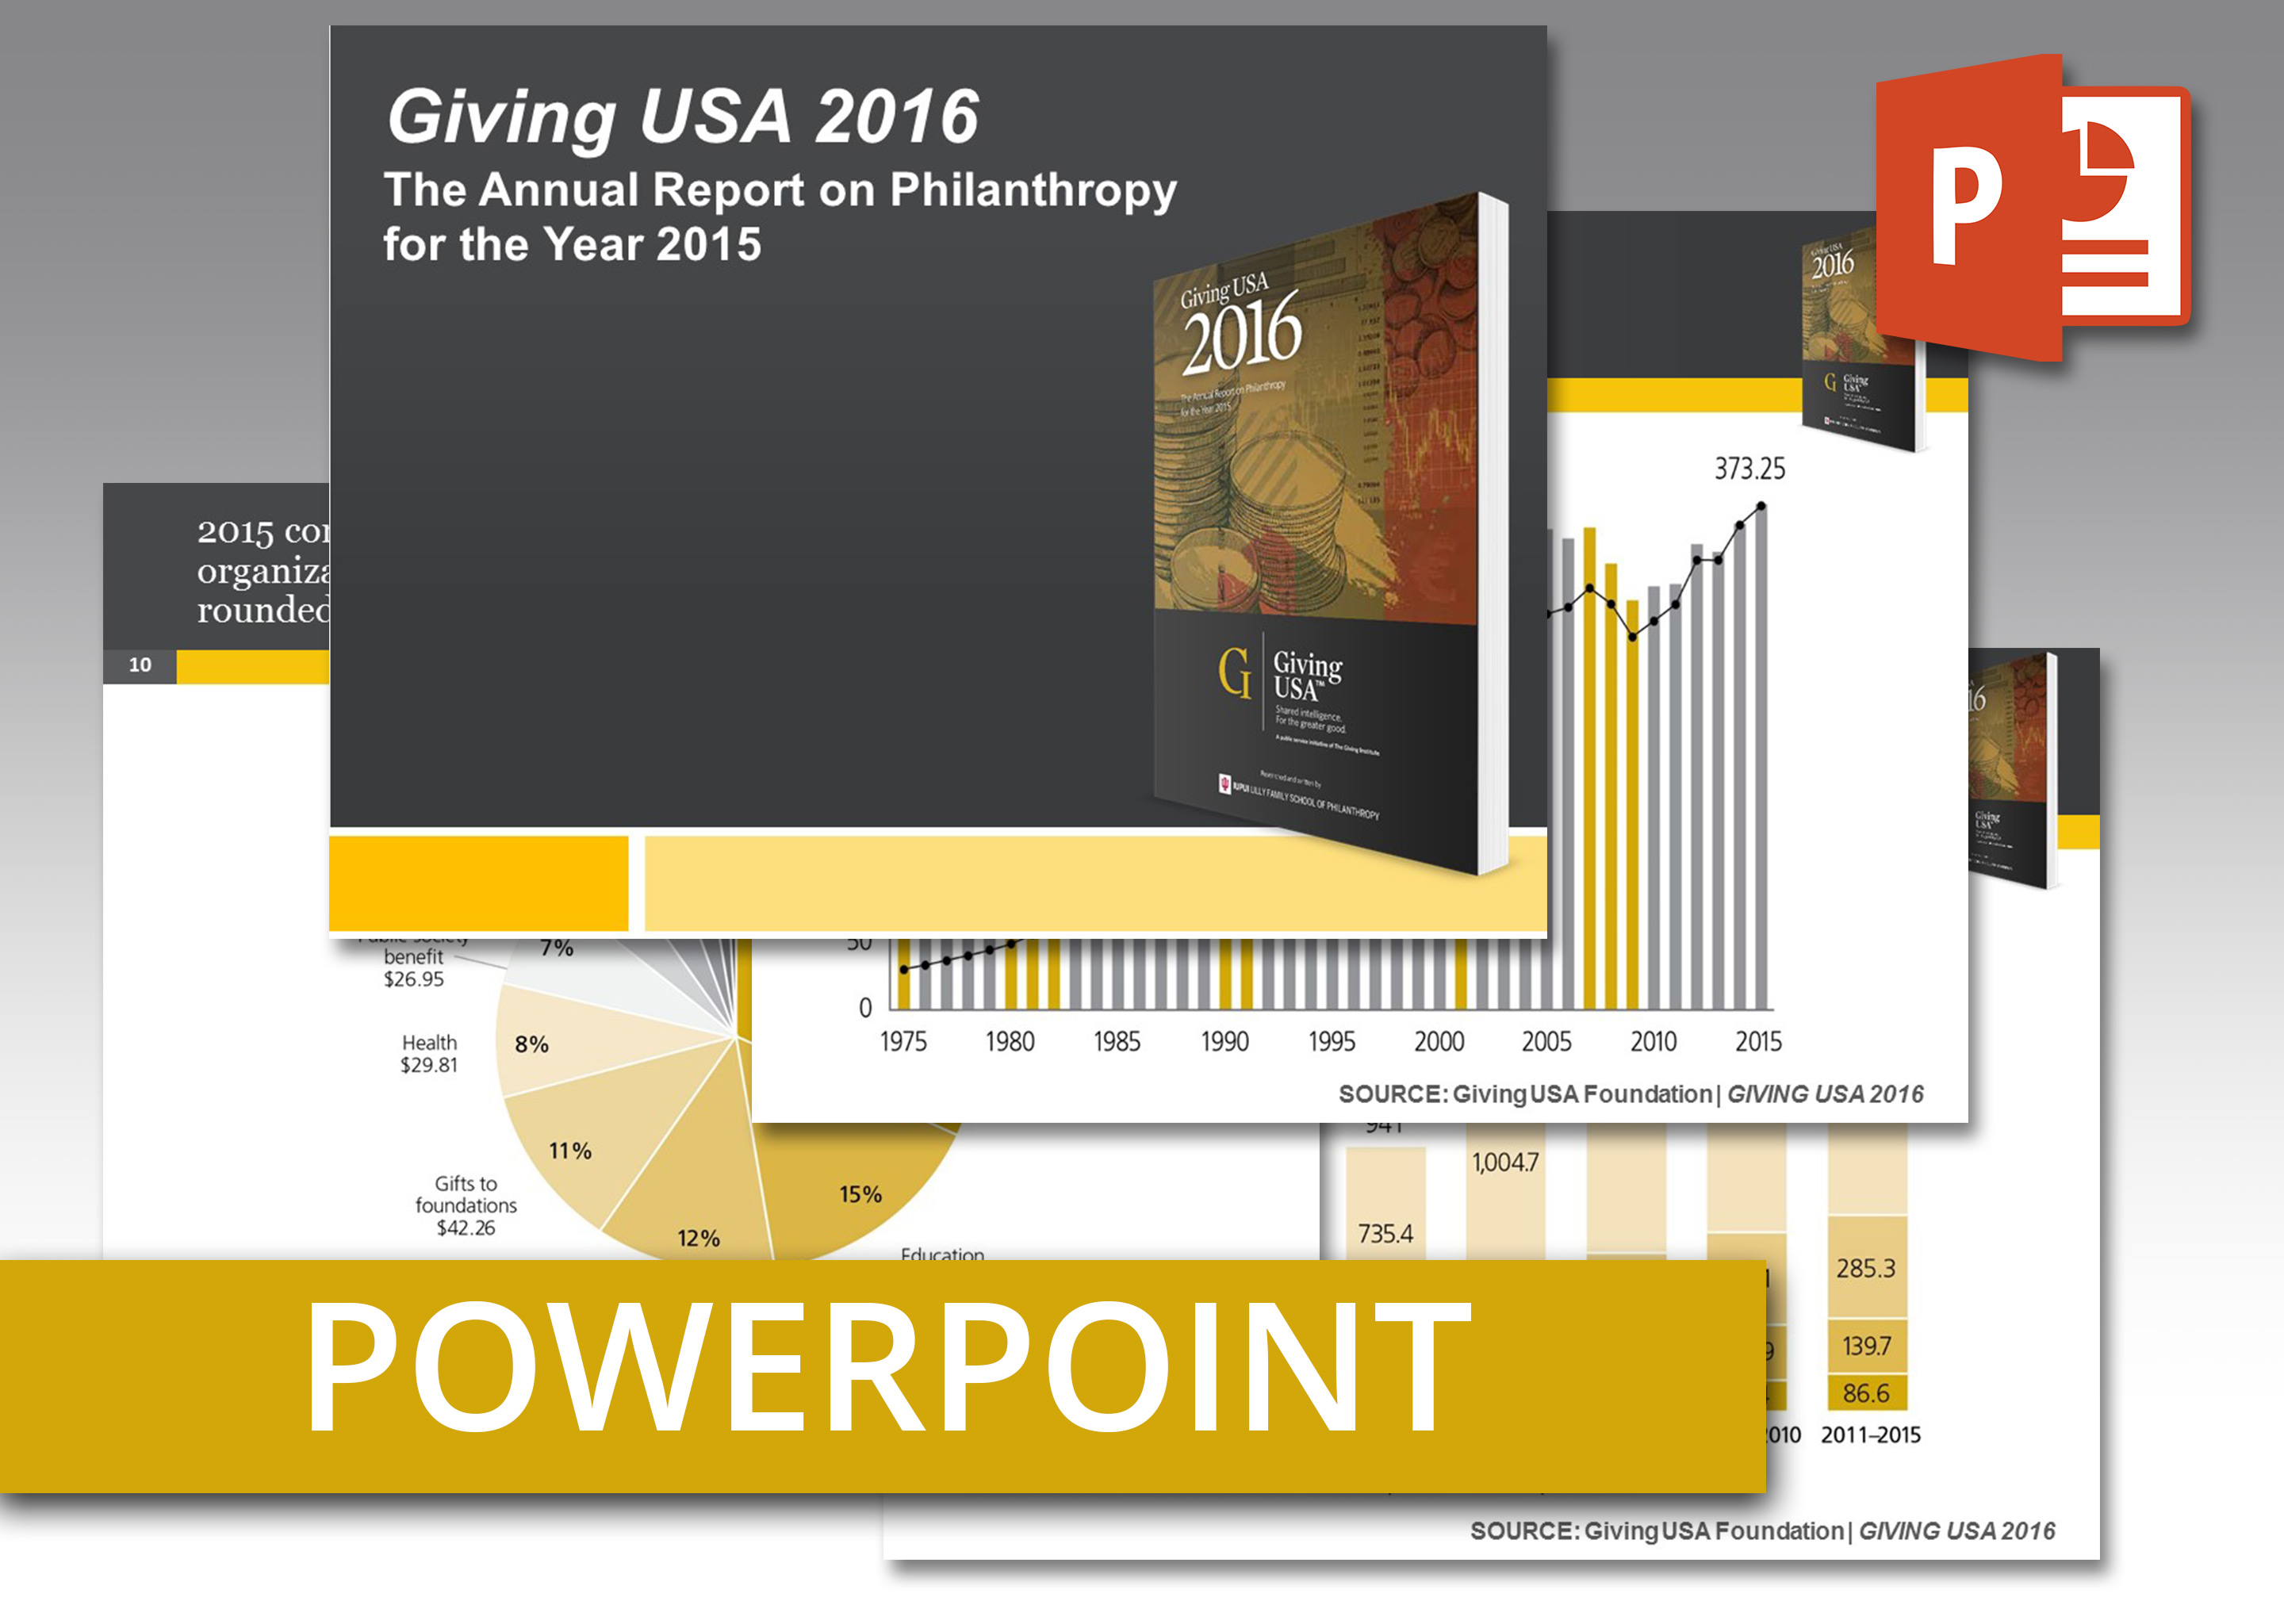 Usdgus  Inspiring Giving Usa  Powerpoint An Easytouse Presentation Of Report  With Foxy Giving Usa  Powerpoint An Easytouse Presentation Of Report Findings Including Talking Points With Agreeable Examples Of Timelines In Powerpoint Also Microsoft Powerpoint  Free Download In Addition Powerpoint Presentation Ideas For Business And Free It Powerpoint Templates As Well As Powerpoint Advanced Tutorial Additionally Entrepreneurship Powerpoint Presentation From Givingusaorg With Usdgus  Foxy Giving Usa  Powerpoint An Easytouse Presentation Of Report  With Agreeable Giving Usa  Powerpoint An Easytouse Presentation Of Report Findings Including Talking Points And Inspiring Examples Of Timelines In Powerpoint Also Microsoft Powerpoint  Free Download In Addition Powerpoint Presentation Ideas For Business From Givingusaorg